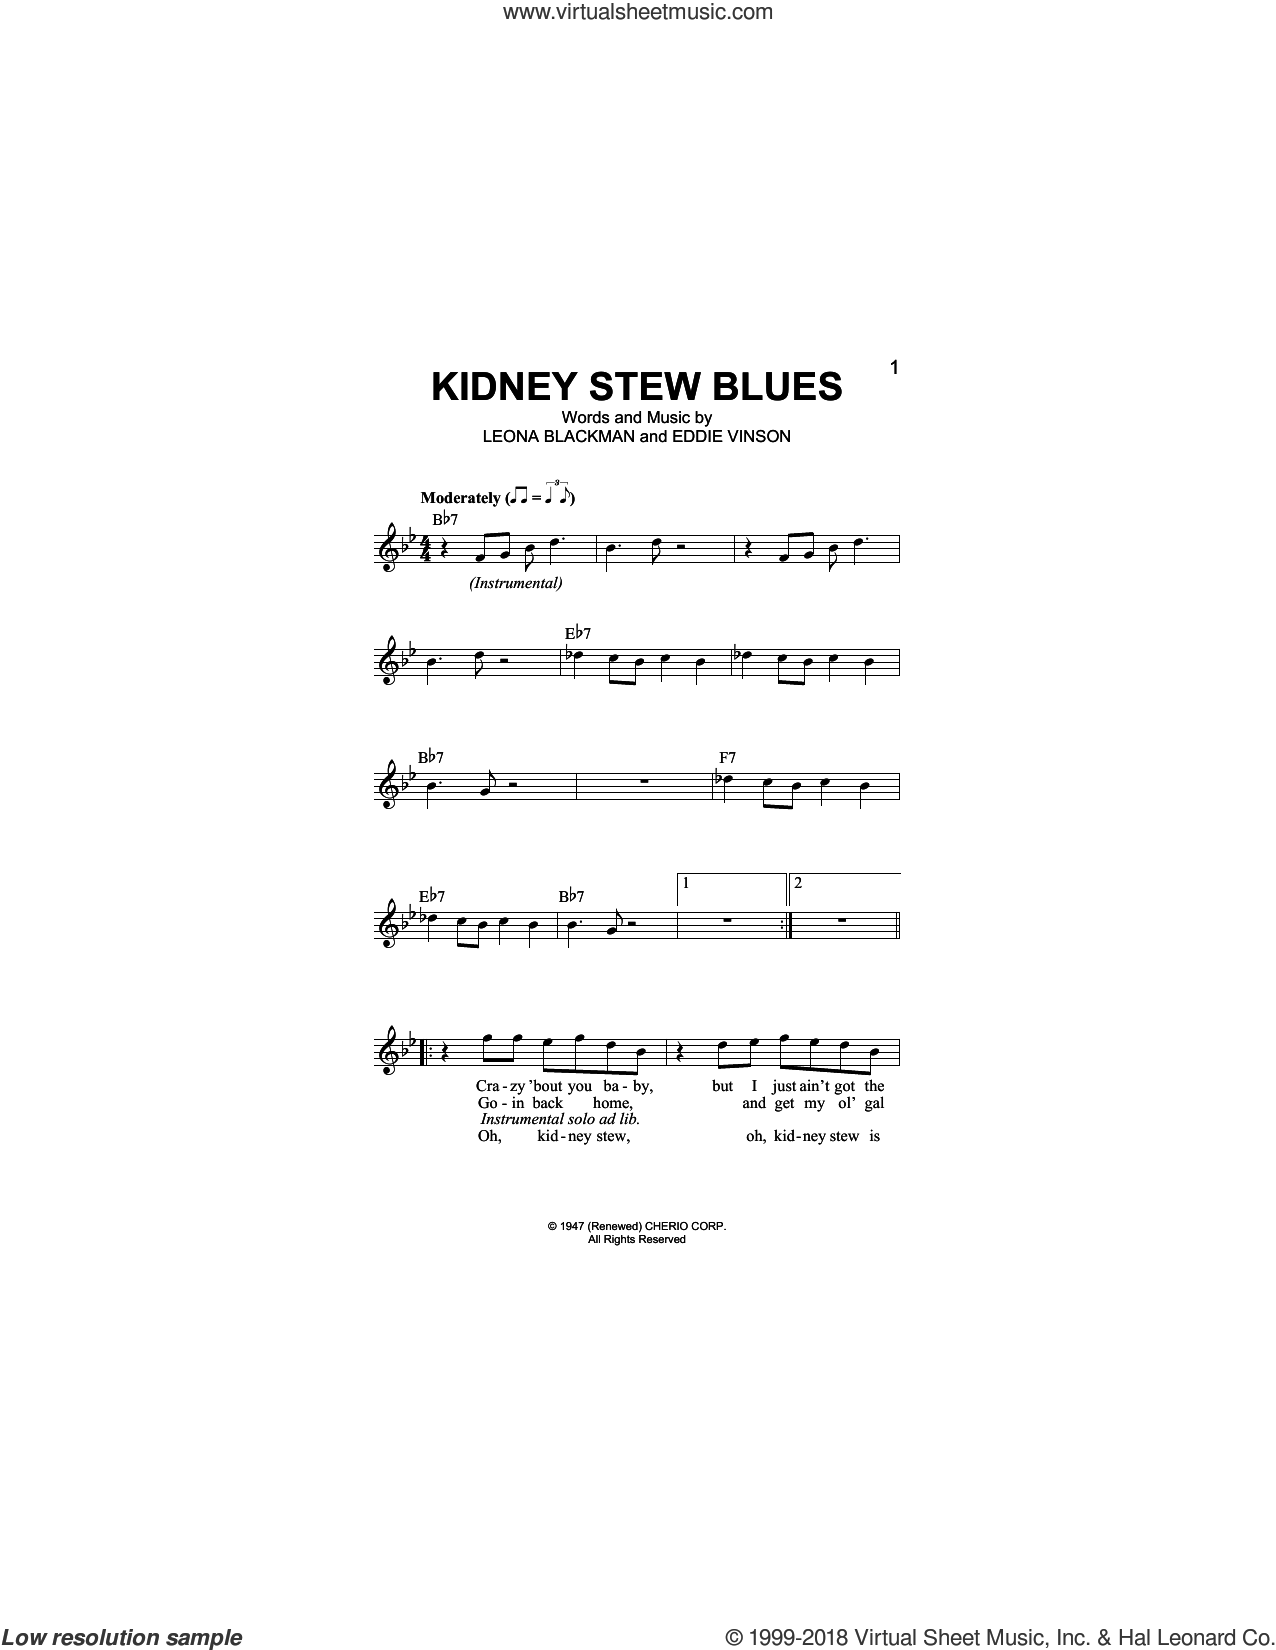 Kidney Stew Blues sheet music for voice and other instruments (fake book) by Eddie Vinson and Leona Blackman, intermediate skill level